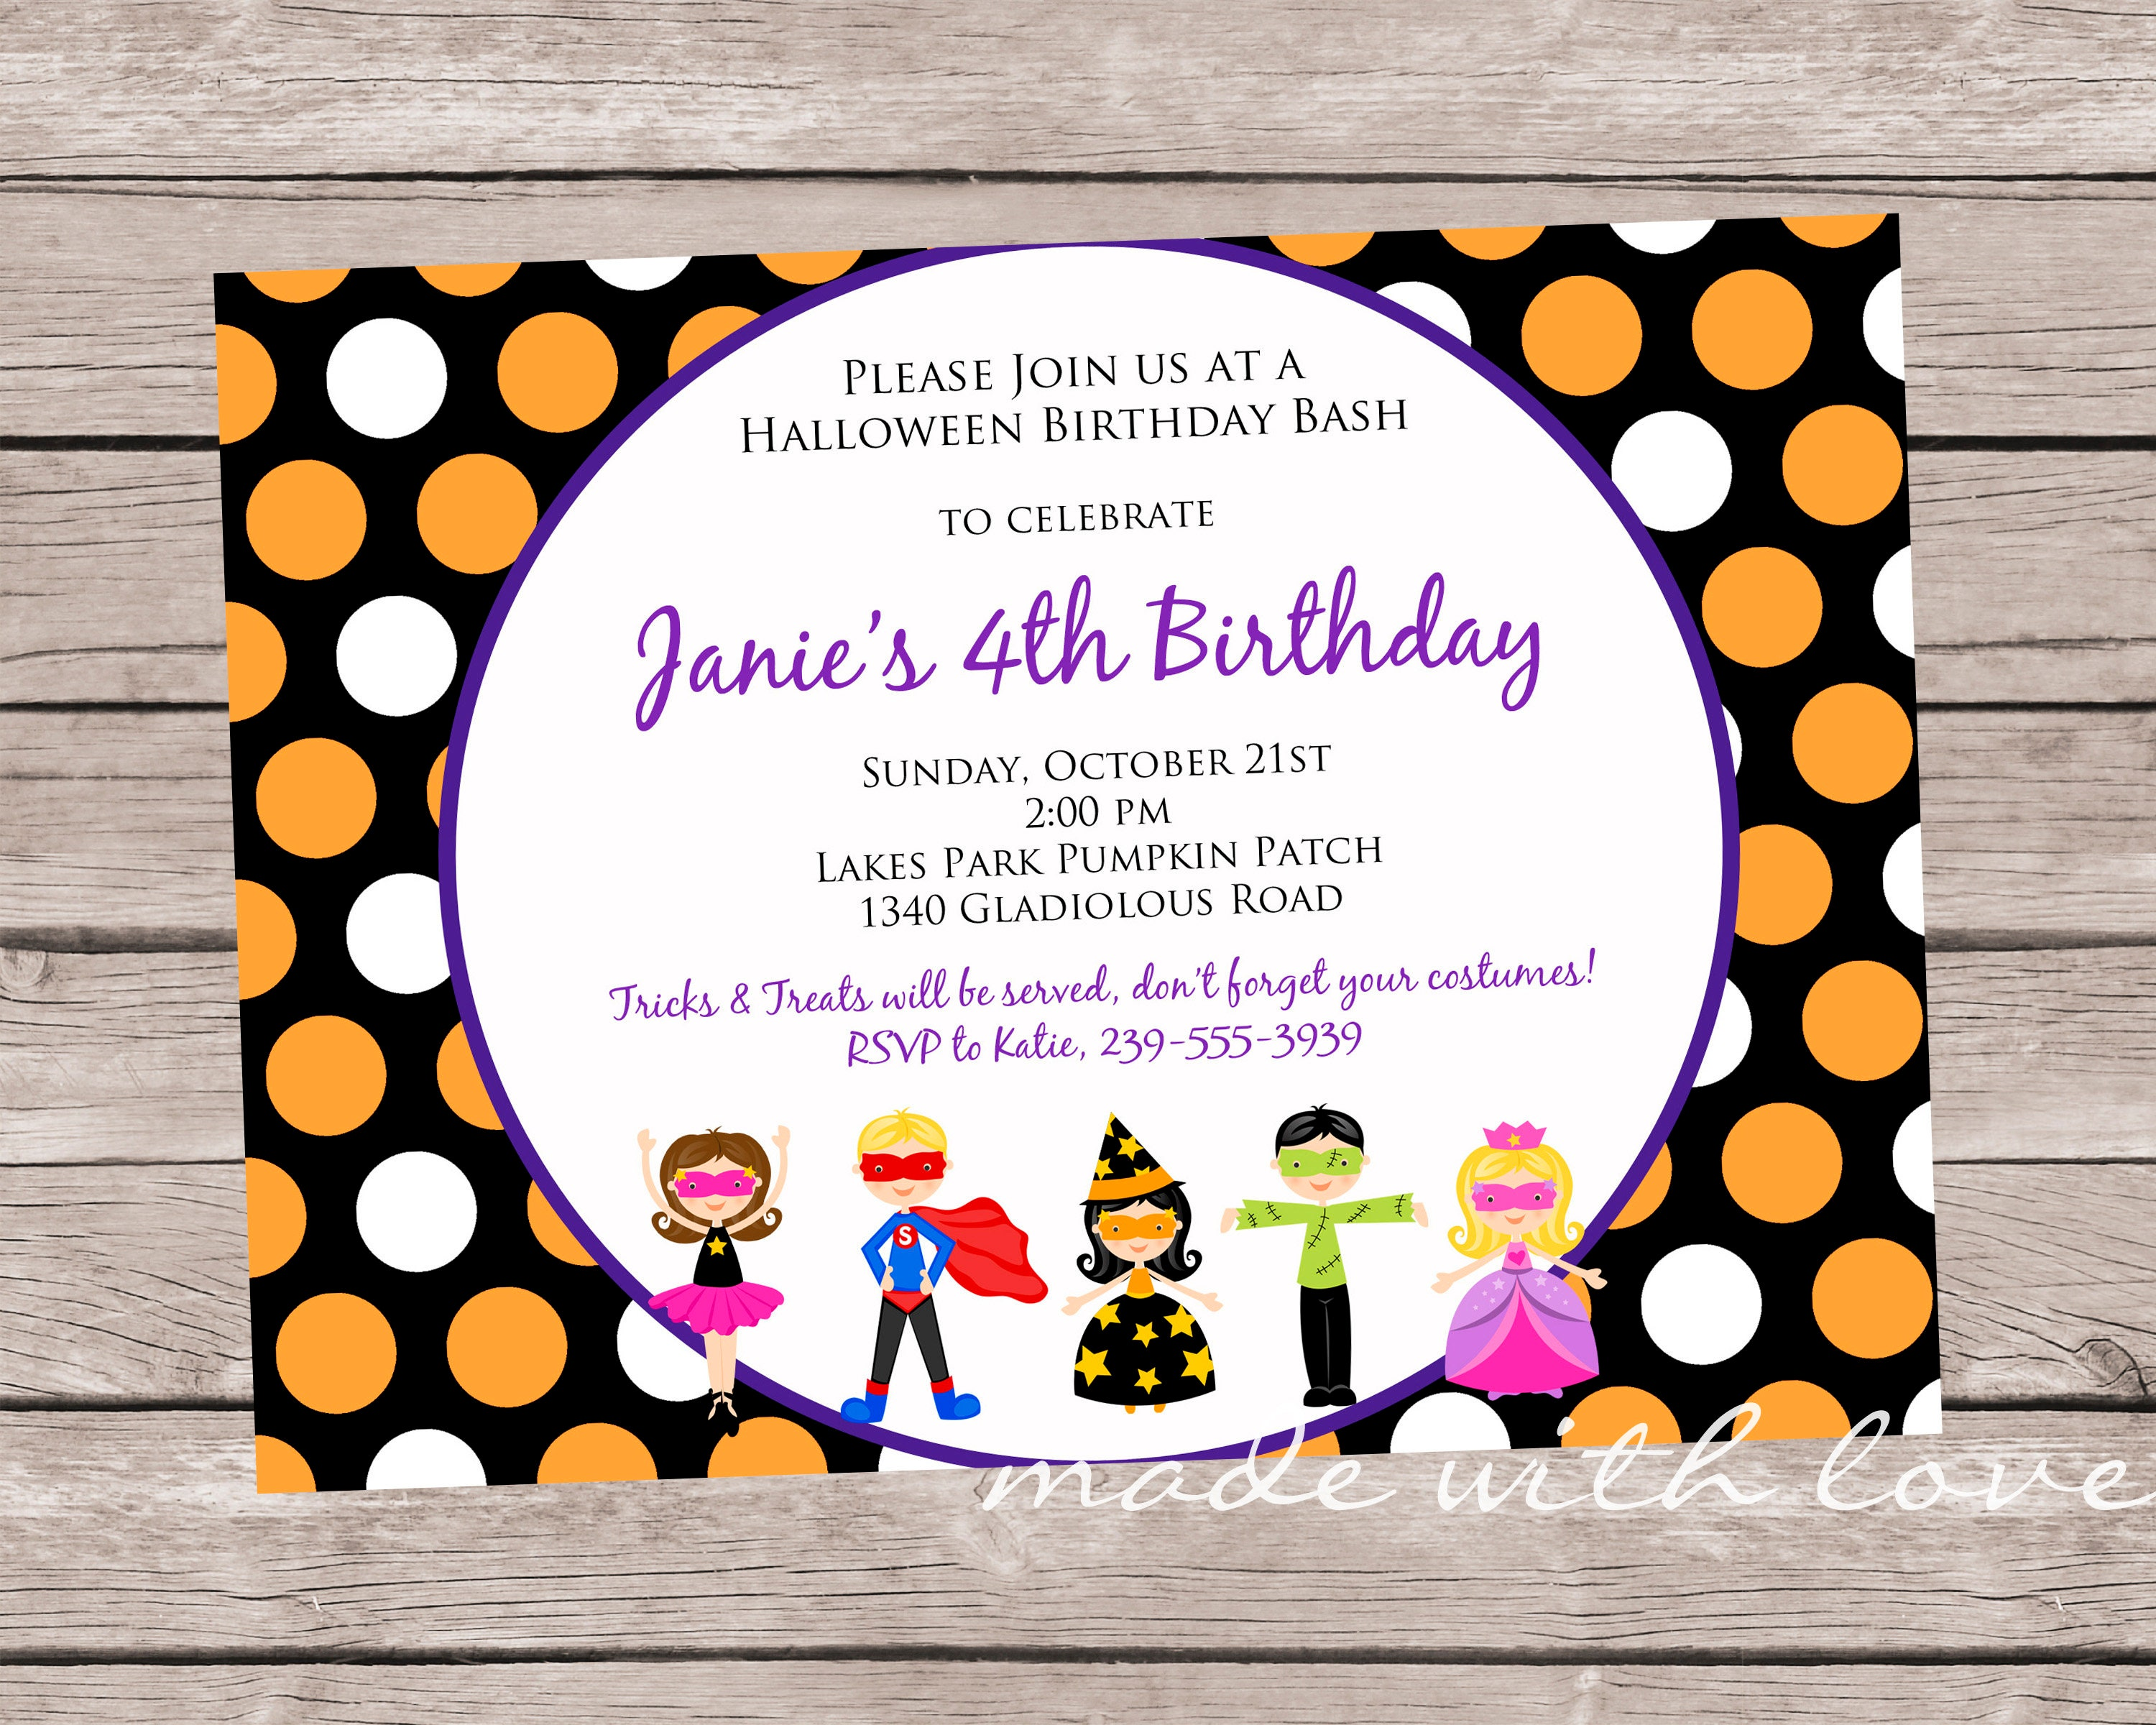 Halloween Kids Party-A 5x7 Halloween Party/Birthday | Etsy